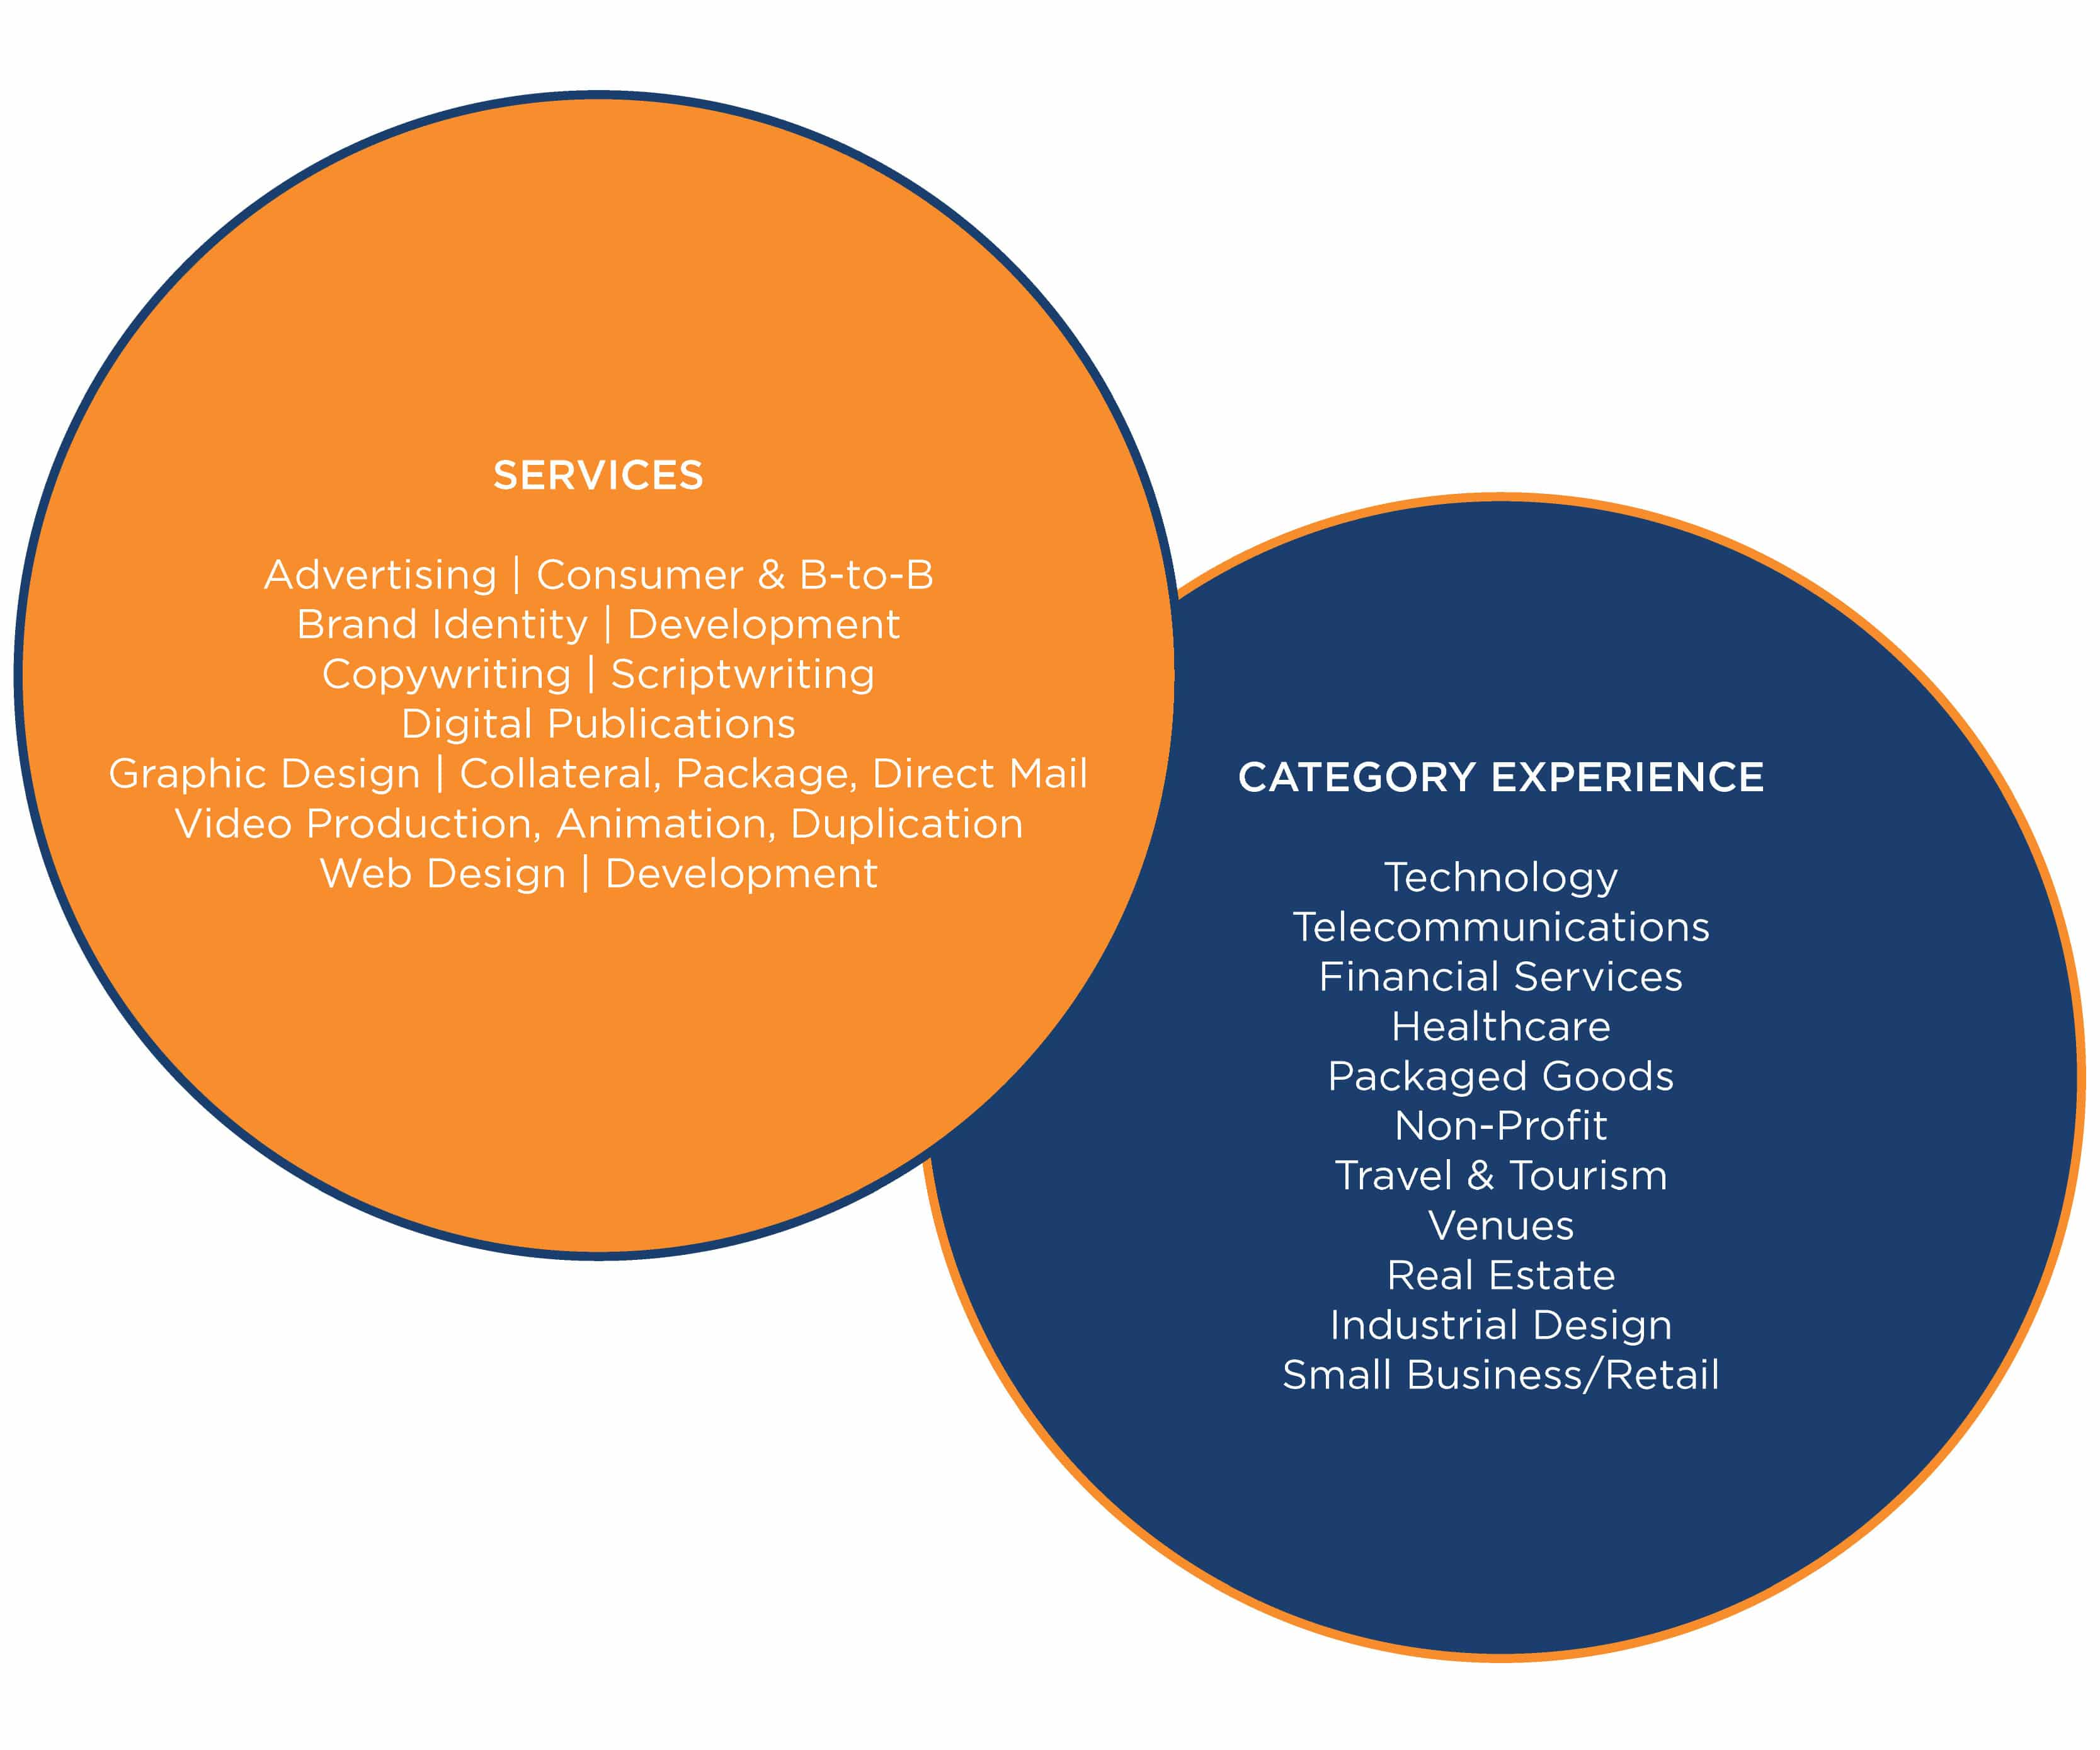 Orbit Creative Services & Category Experience